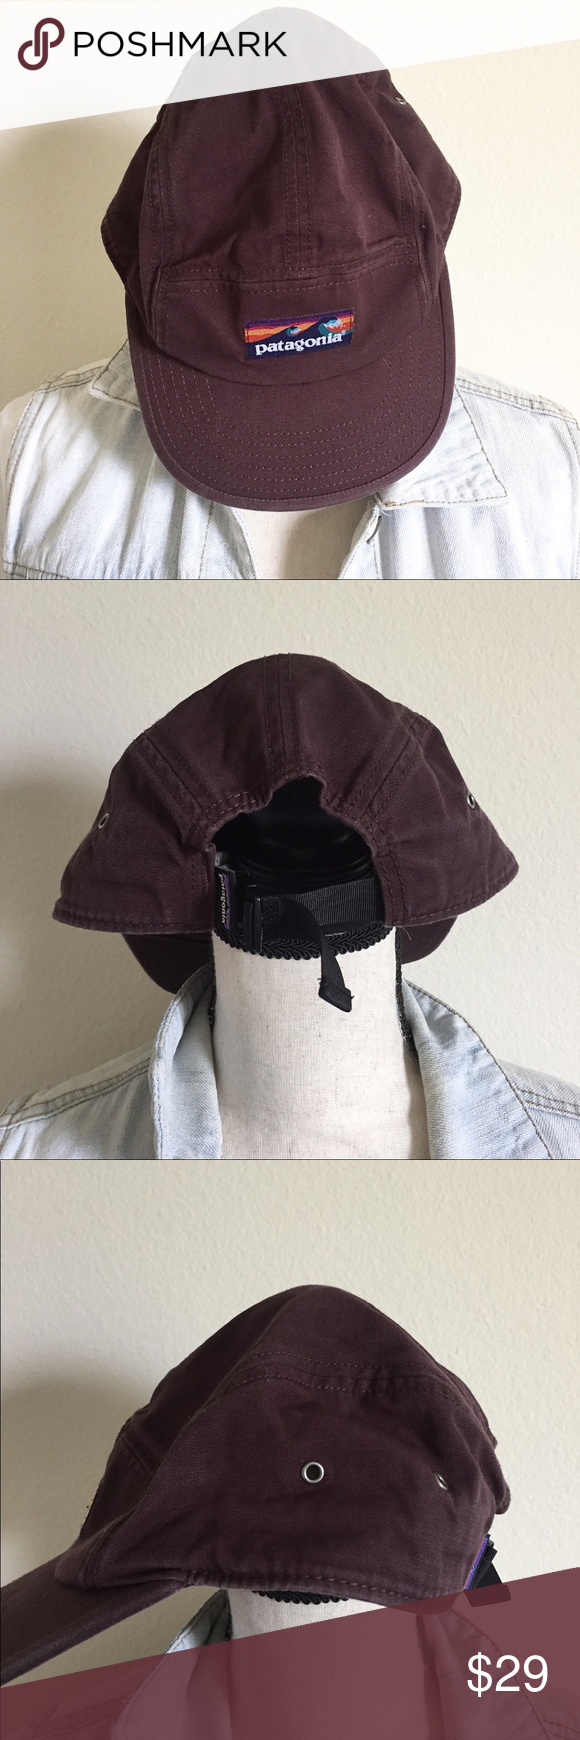 Patagonia Board Short Label Tradesmith Cap unisex Unisex style. In great  condition. Patagonia Accessories Hats 576daaef979